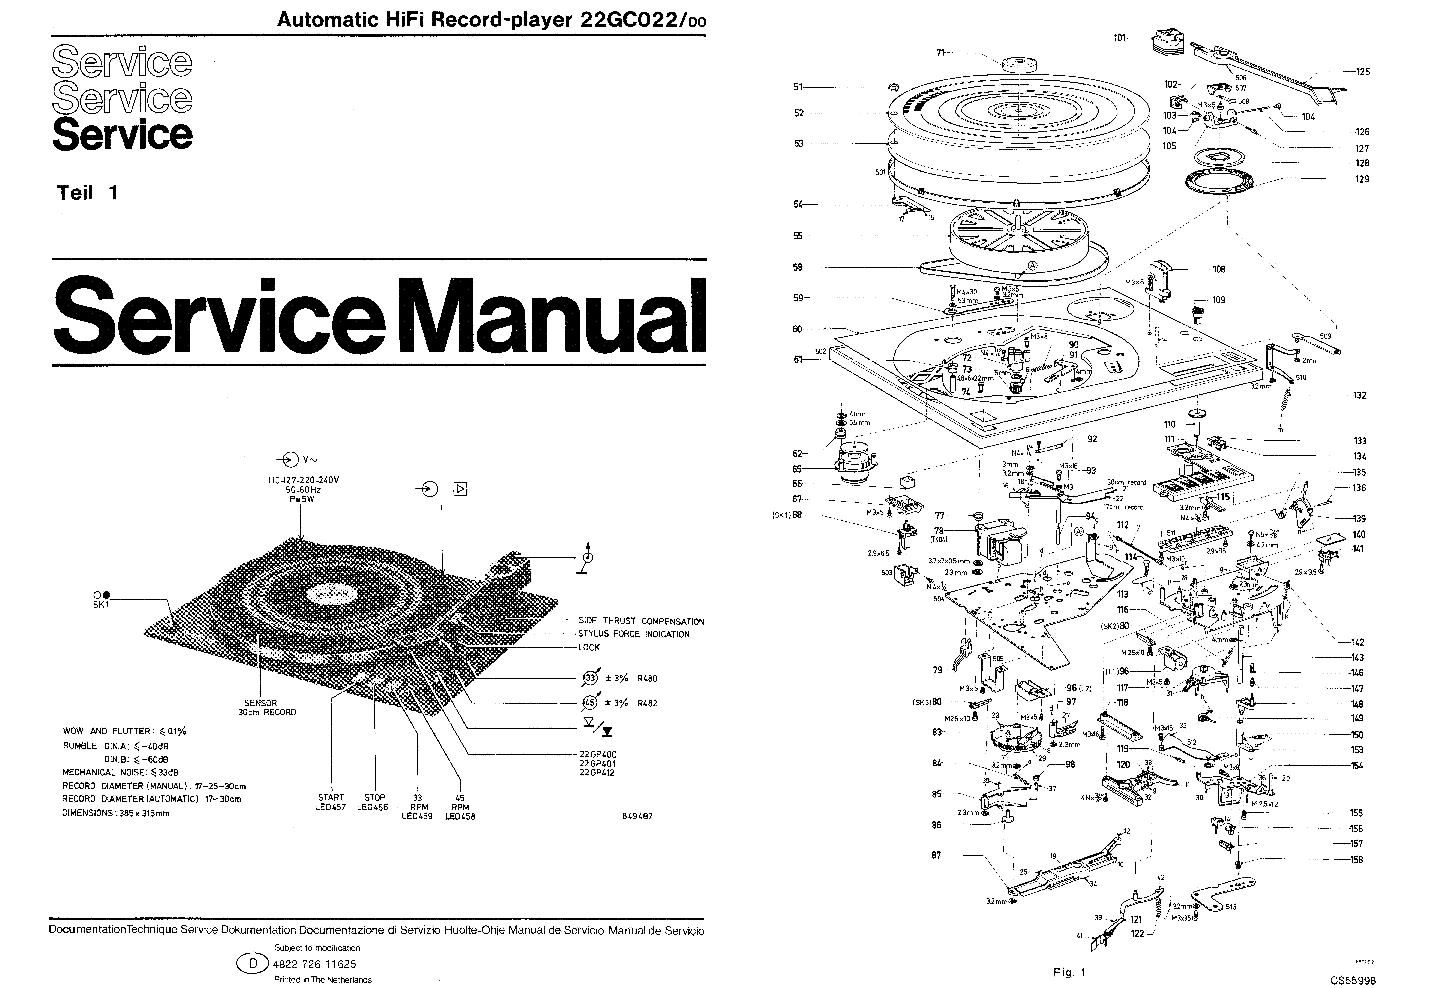 PHILIPS 22GA222 Service Manual download, schematics